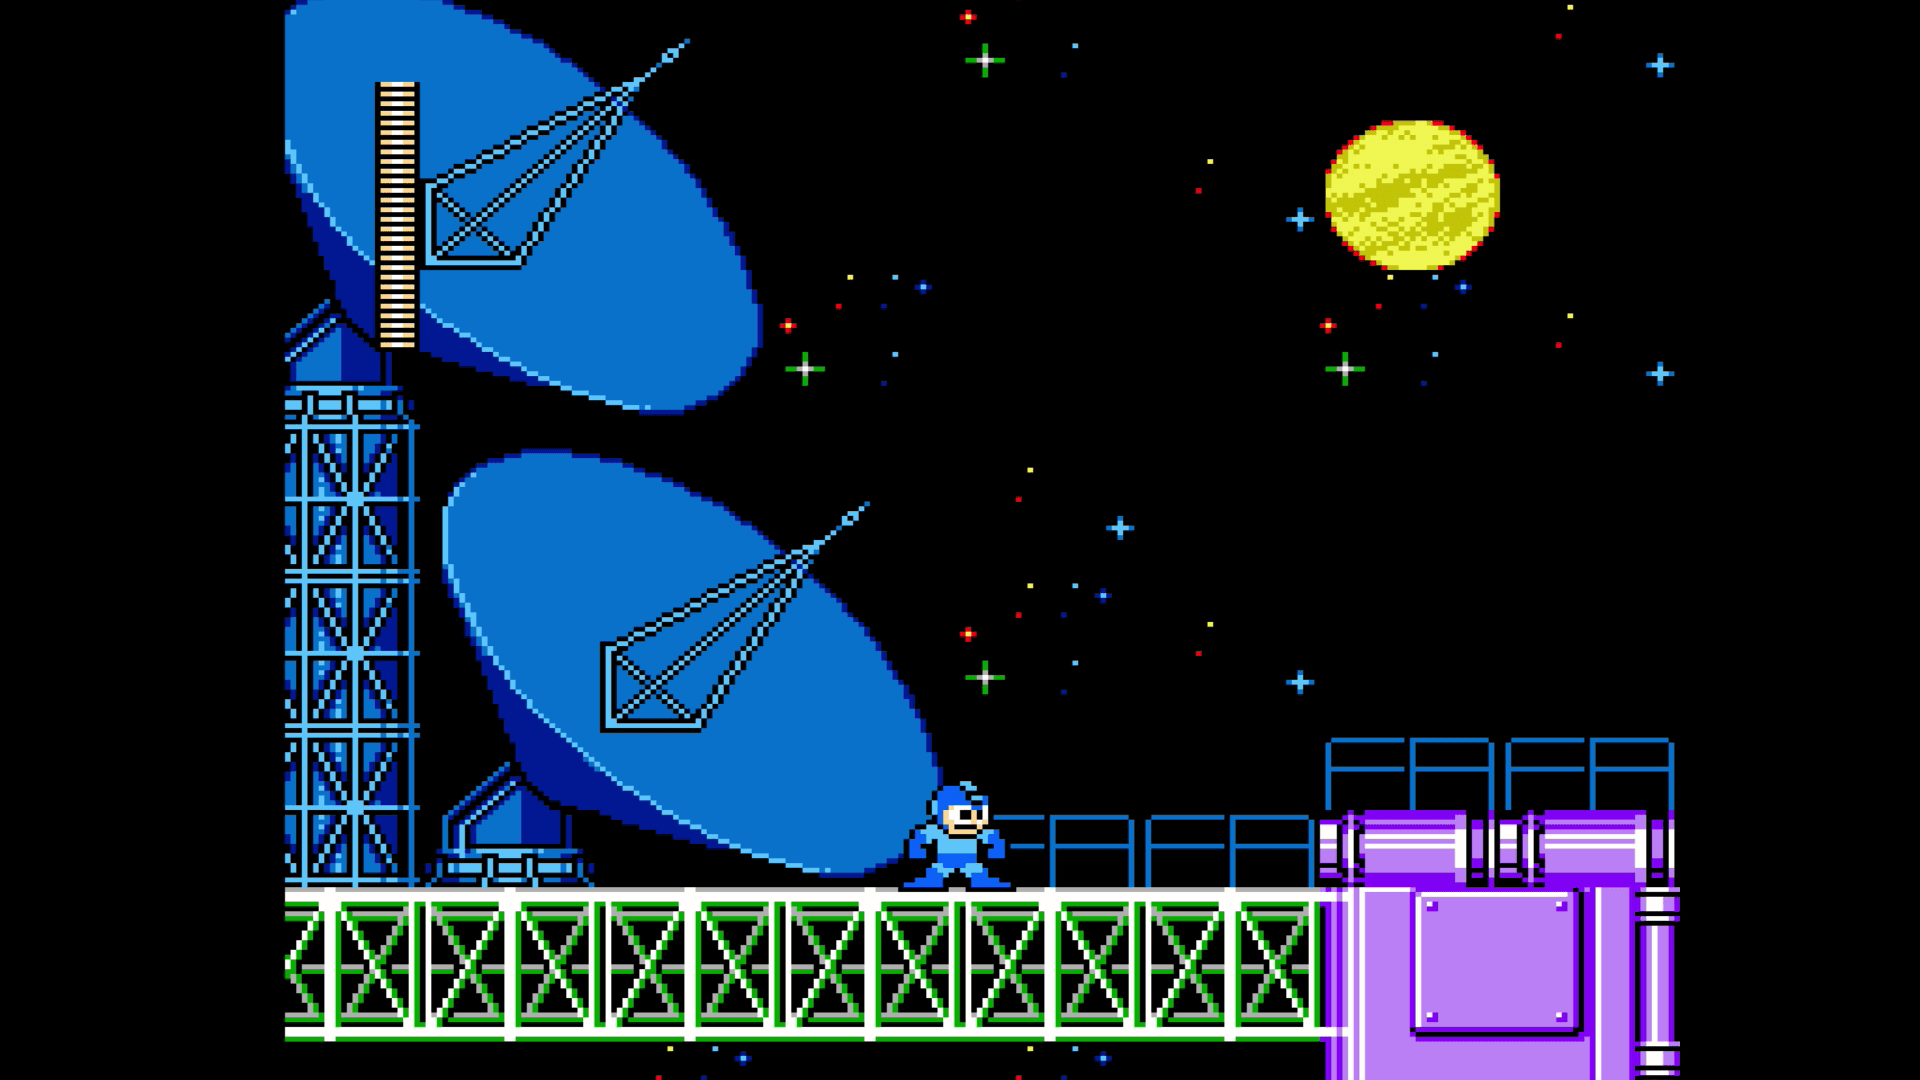 Capcom Announces Mega Man Legacy Collection and Confirms E3 Lineup - 2015-06-08 11:12:10